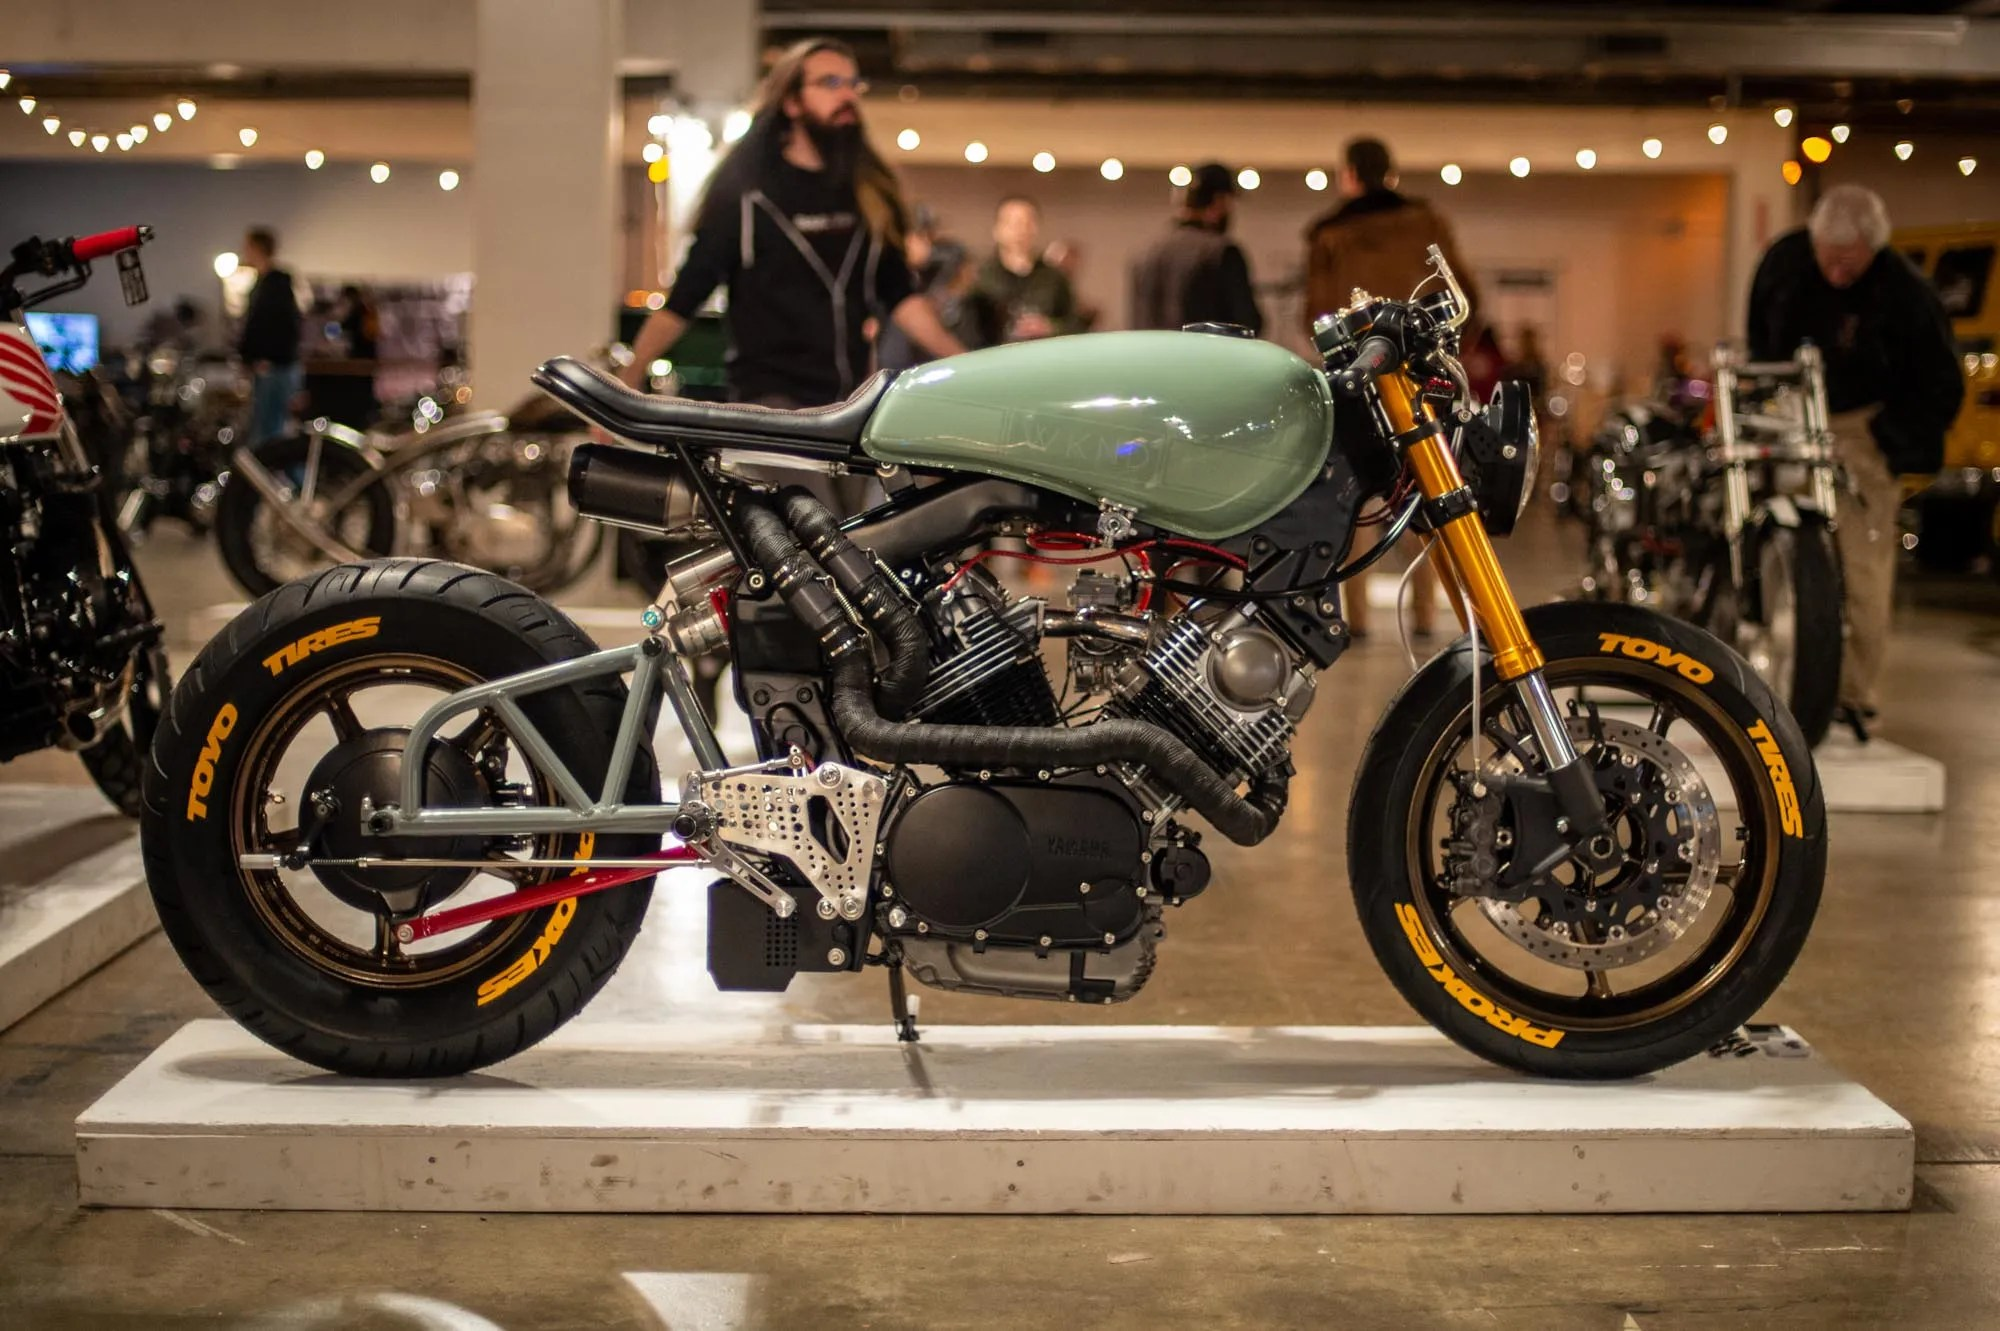 The One Moto Show: Yamaha Virago 750 by WKND